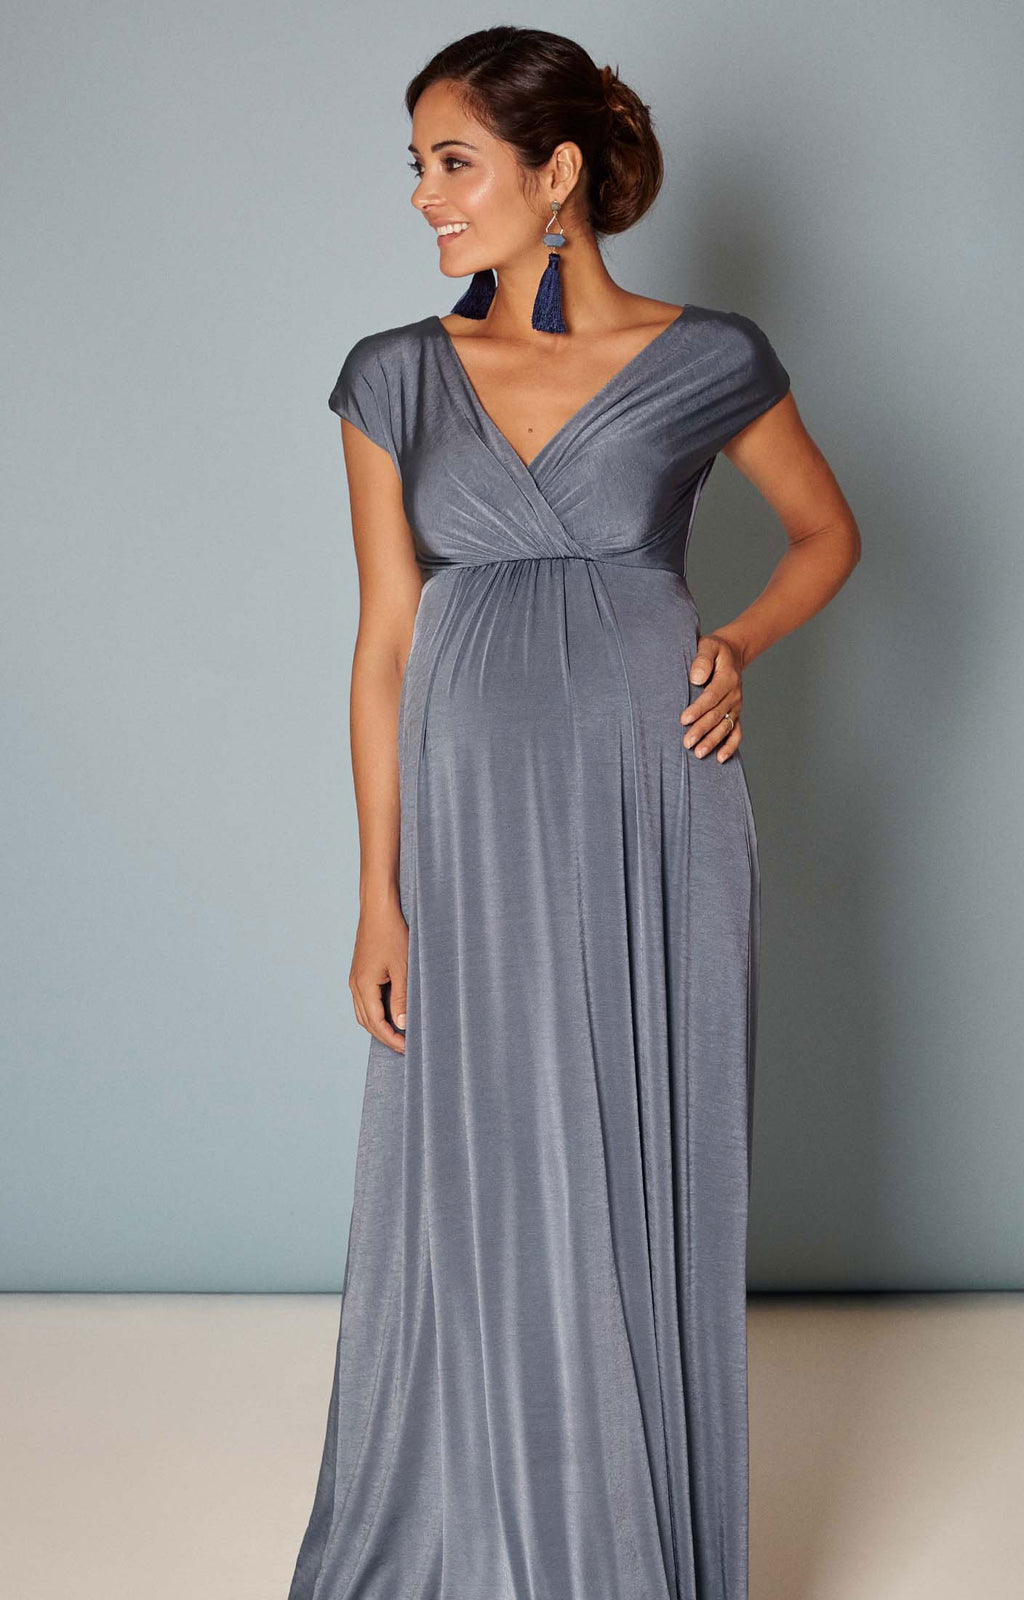 Tiffany Rose Francesca Blue Maternity and Nursing Gown